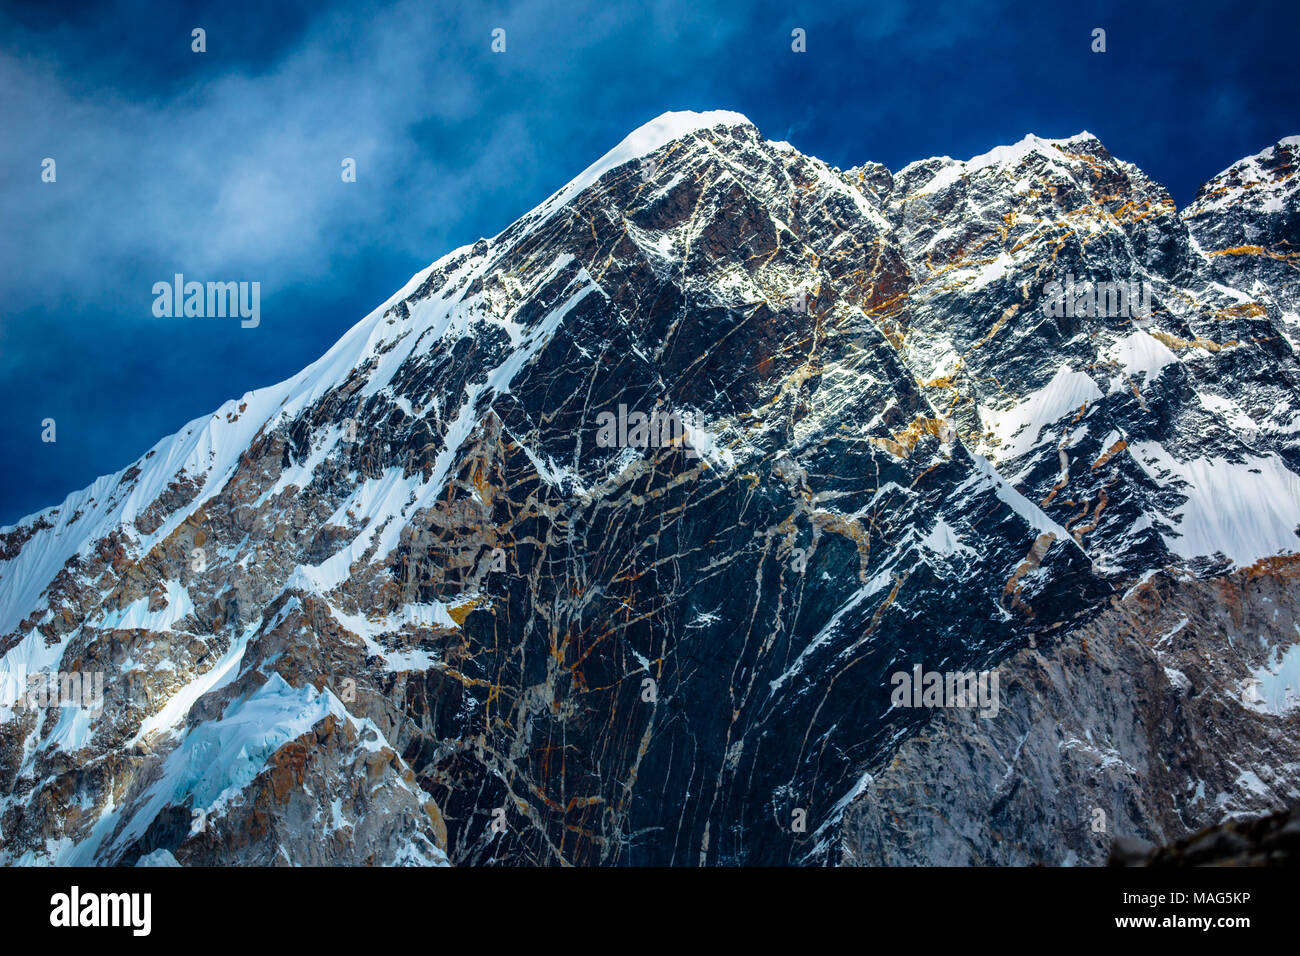 The rich geological history of the Himalayas can be seen in every mountains coloured rock face on the way to Base Camp Mount Everest, Nepal - Stock Image